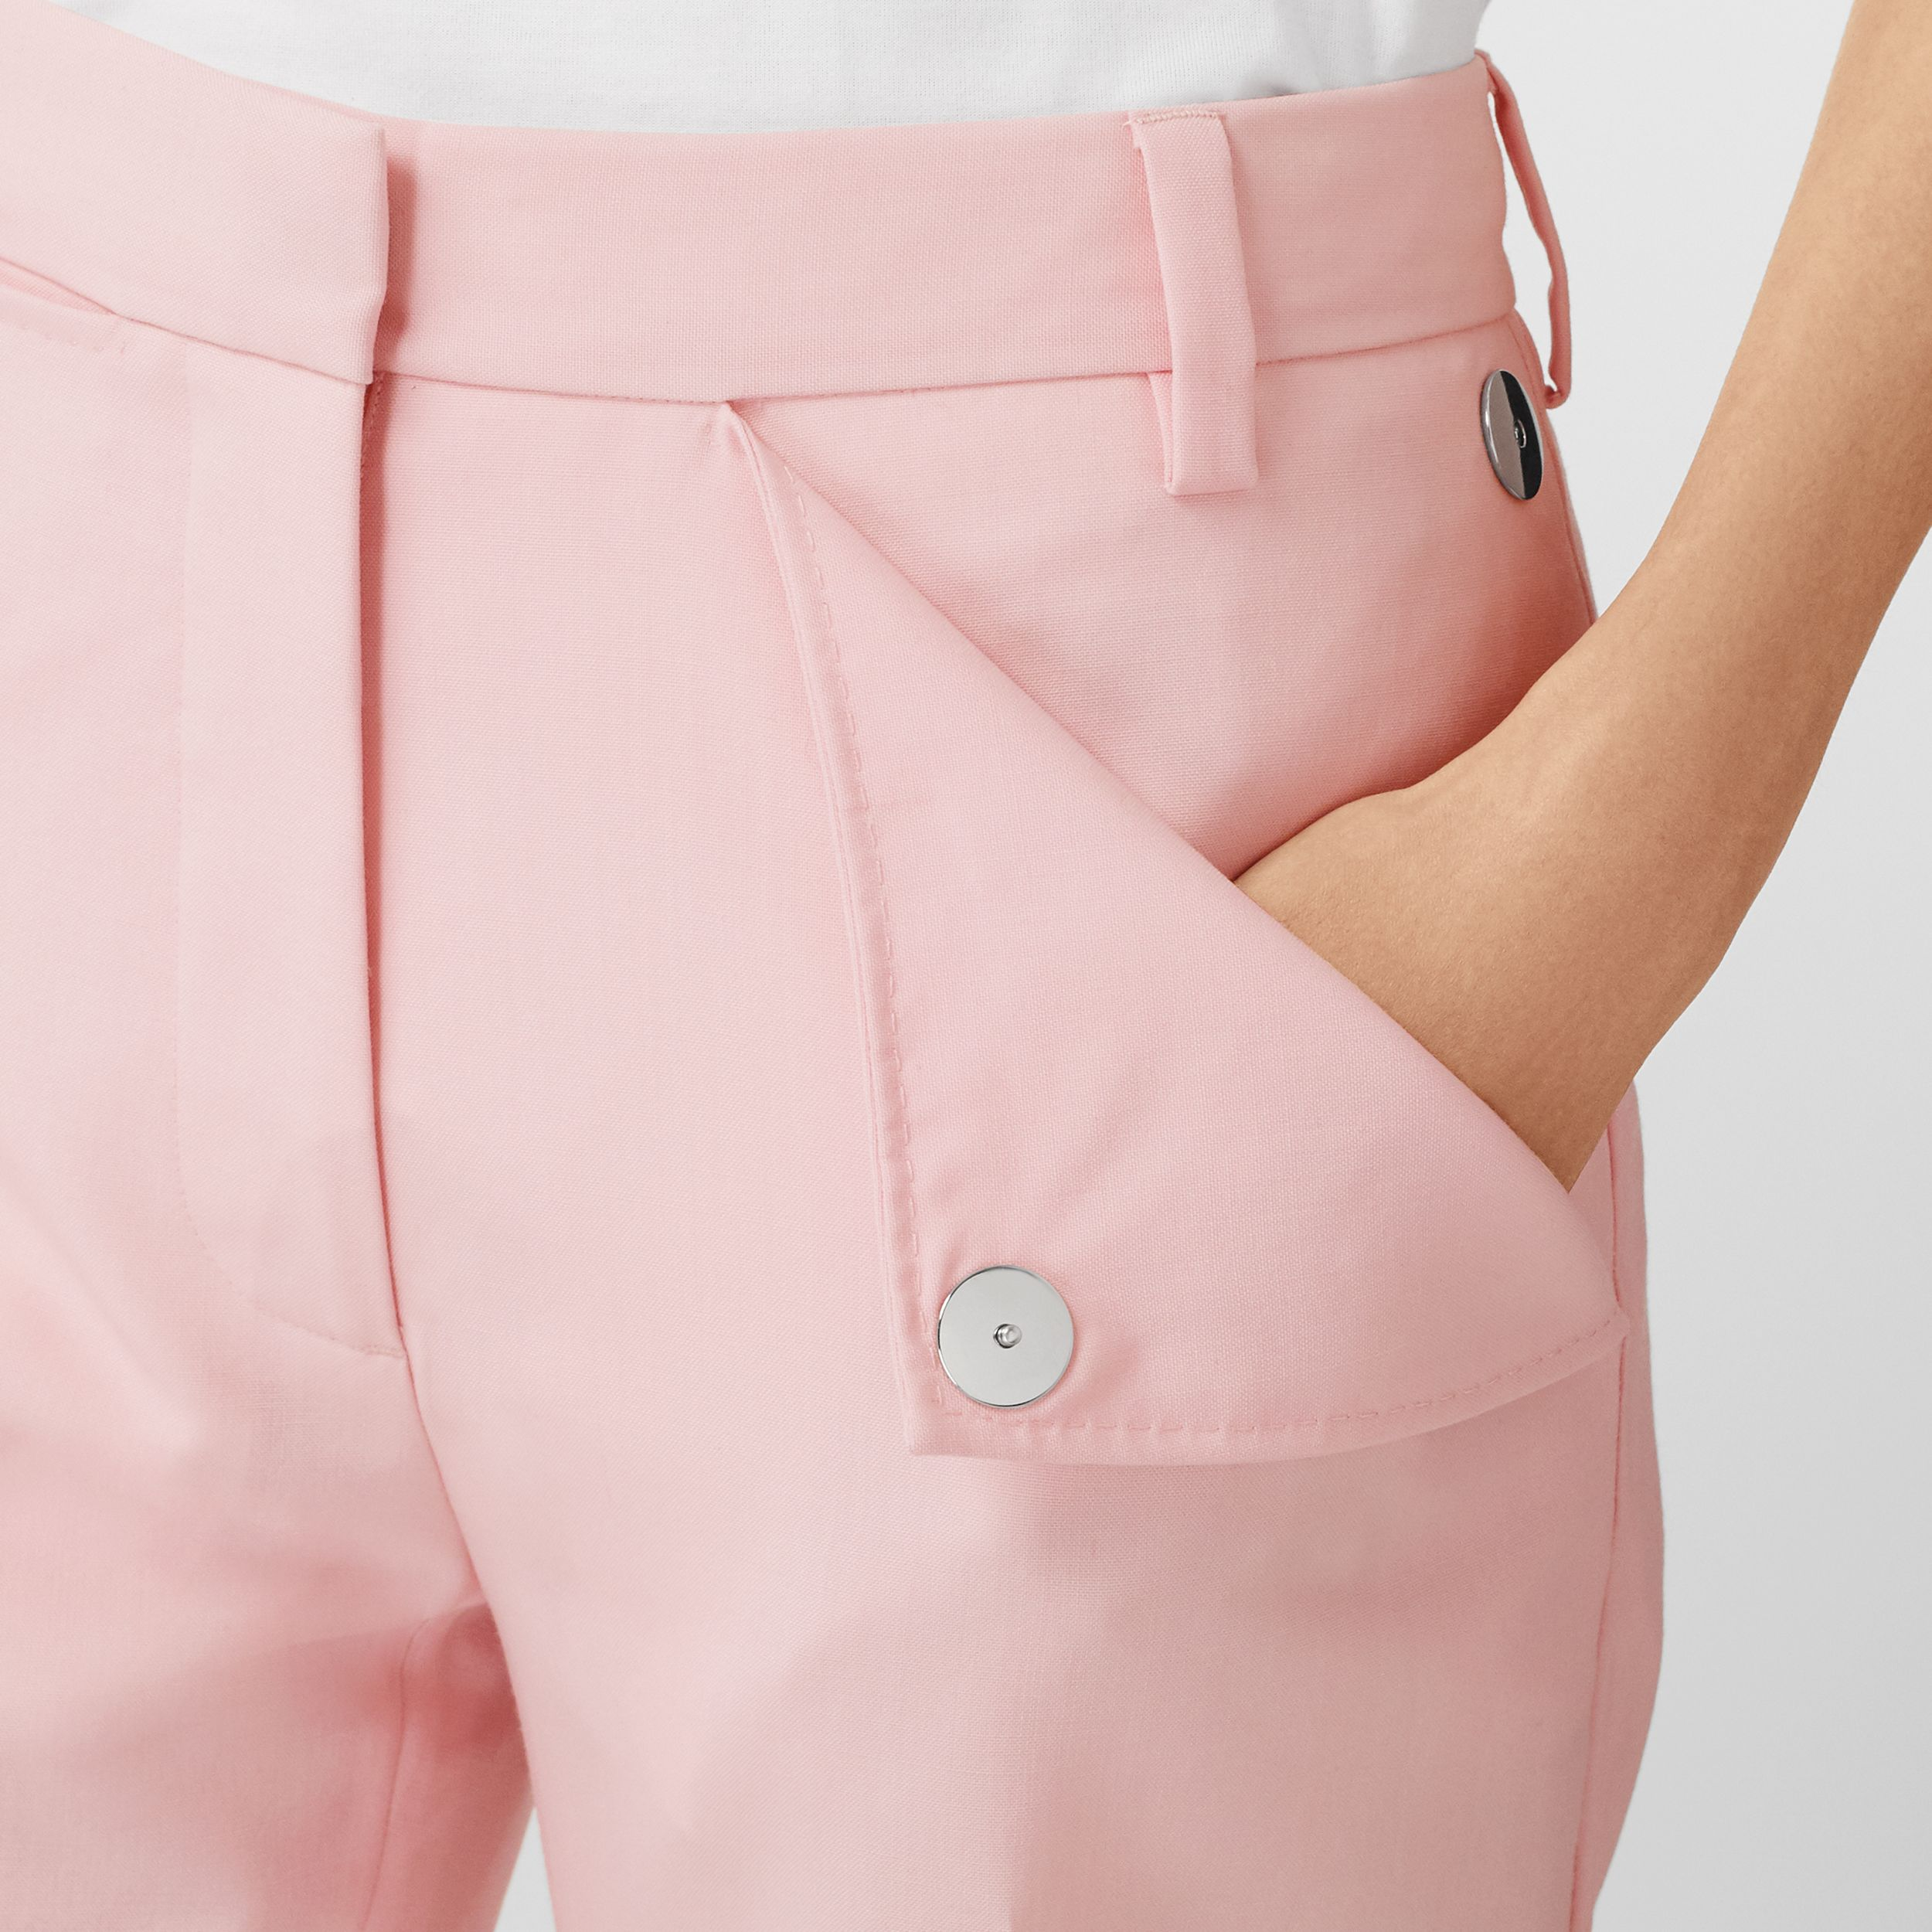 Pocket Detail Tumbled Wool Tailored Trousers in Soft Pink - Women | Burberry - 2